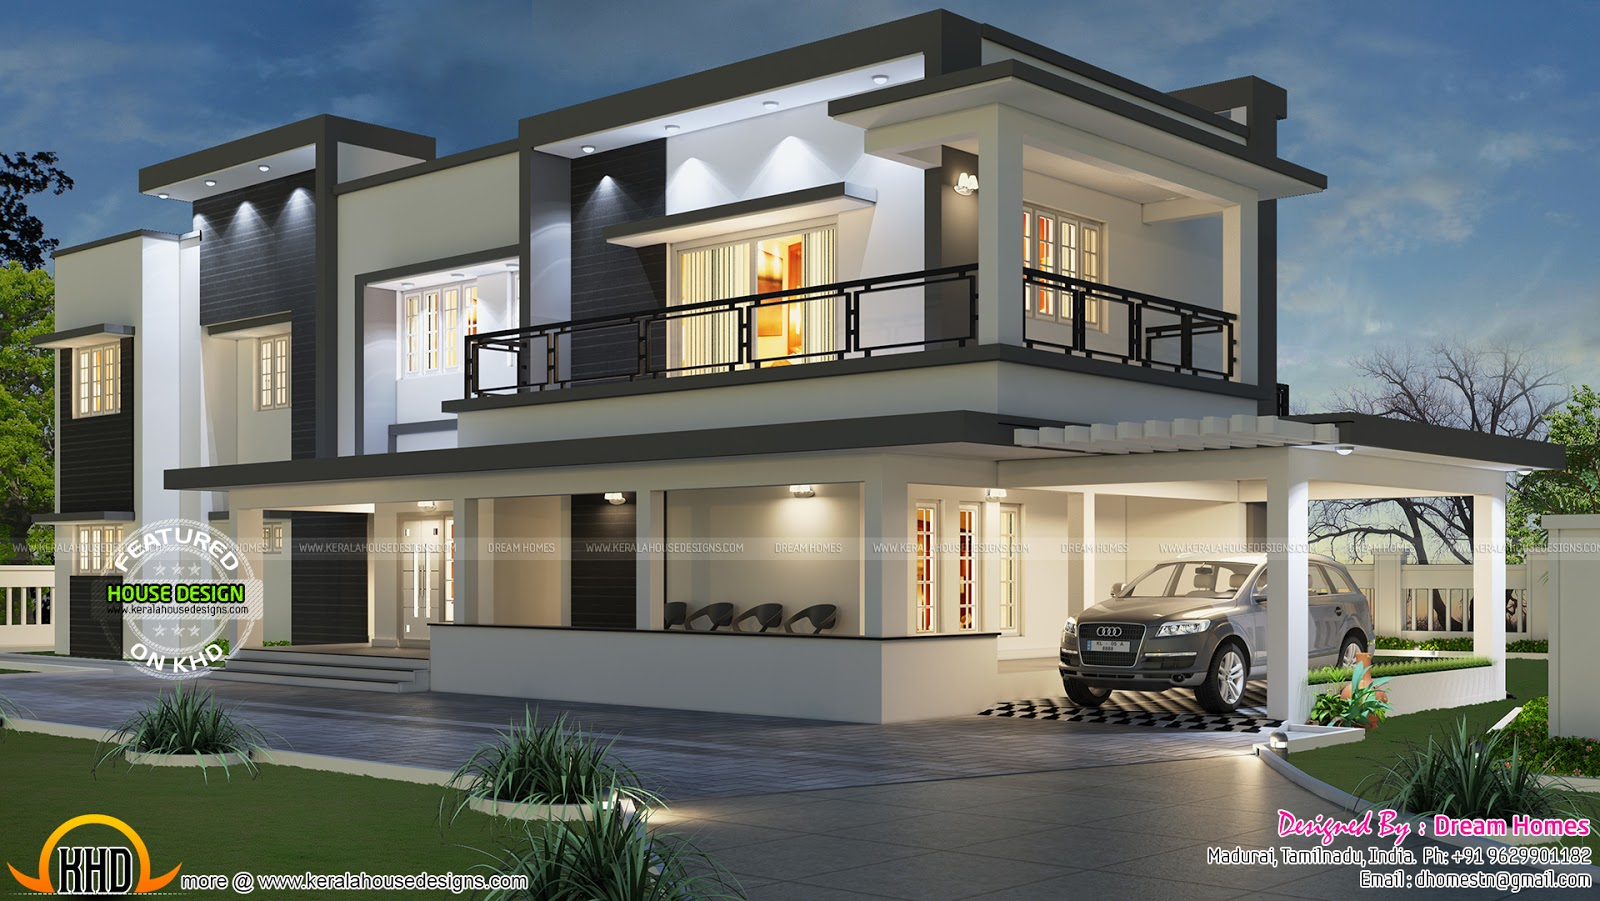 Amazing Free Floor Plan Of Modern House - Kerala Home Design And Floor Plans inside Kerala House Design With Floor Plans